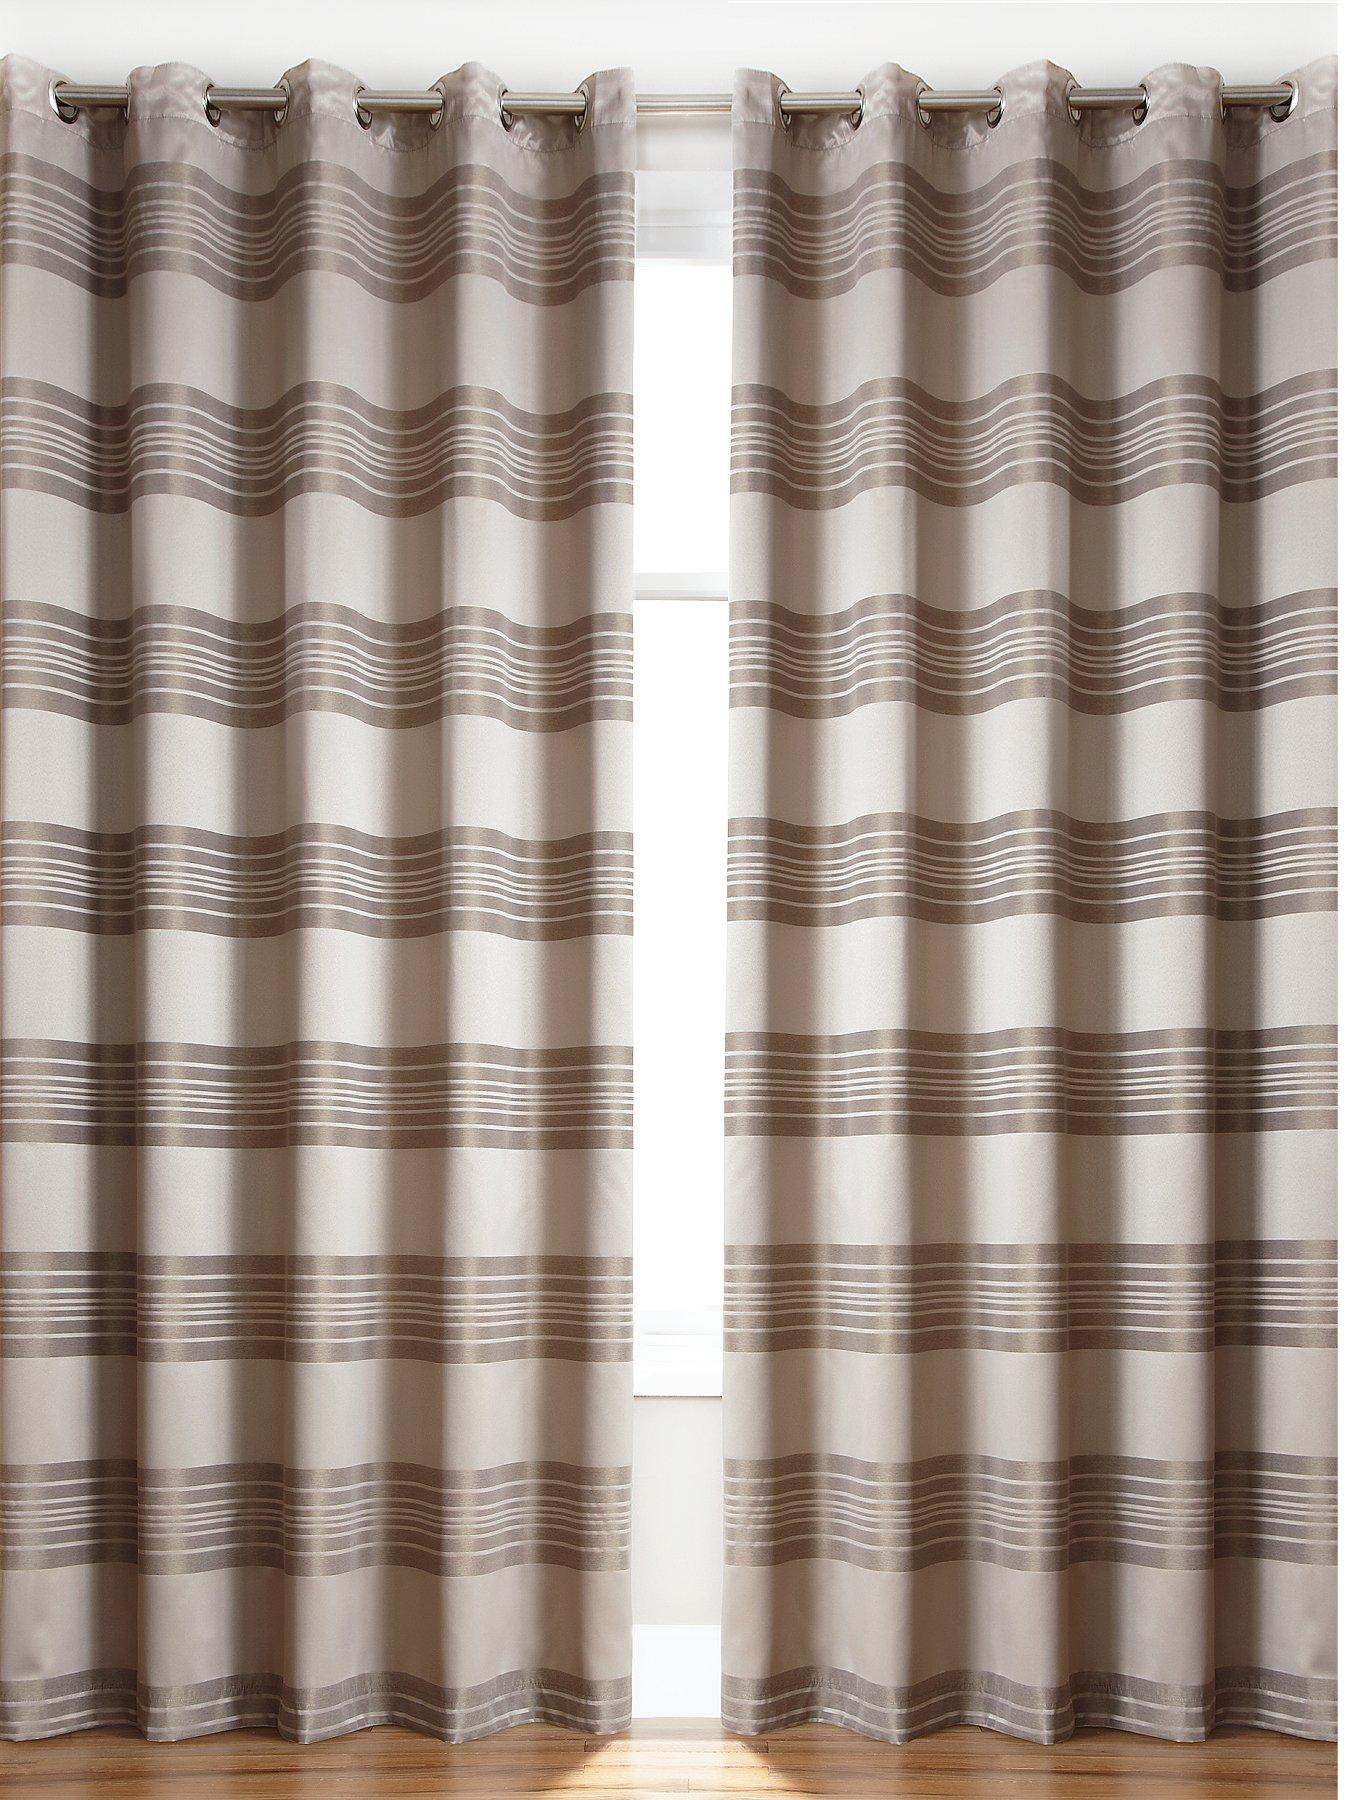 Paris Jacquard Eyelet Curtains, Silver